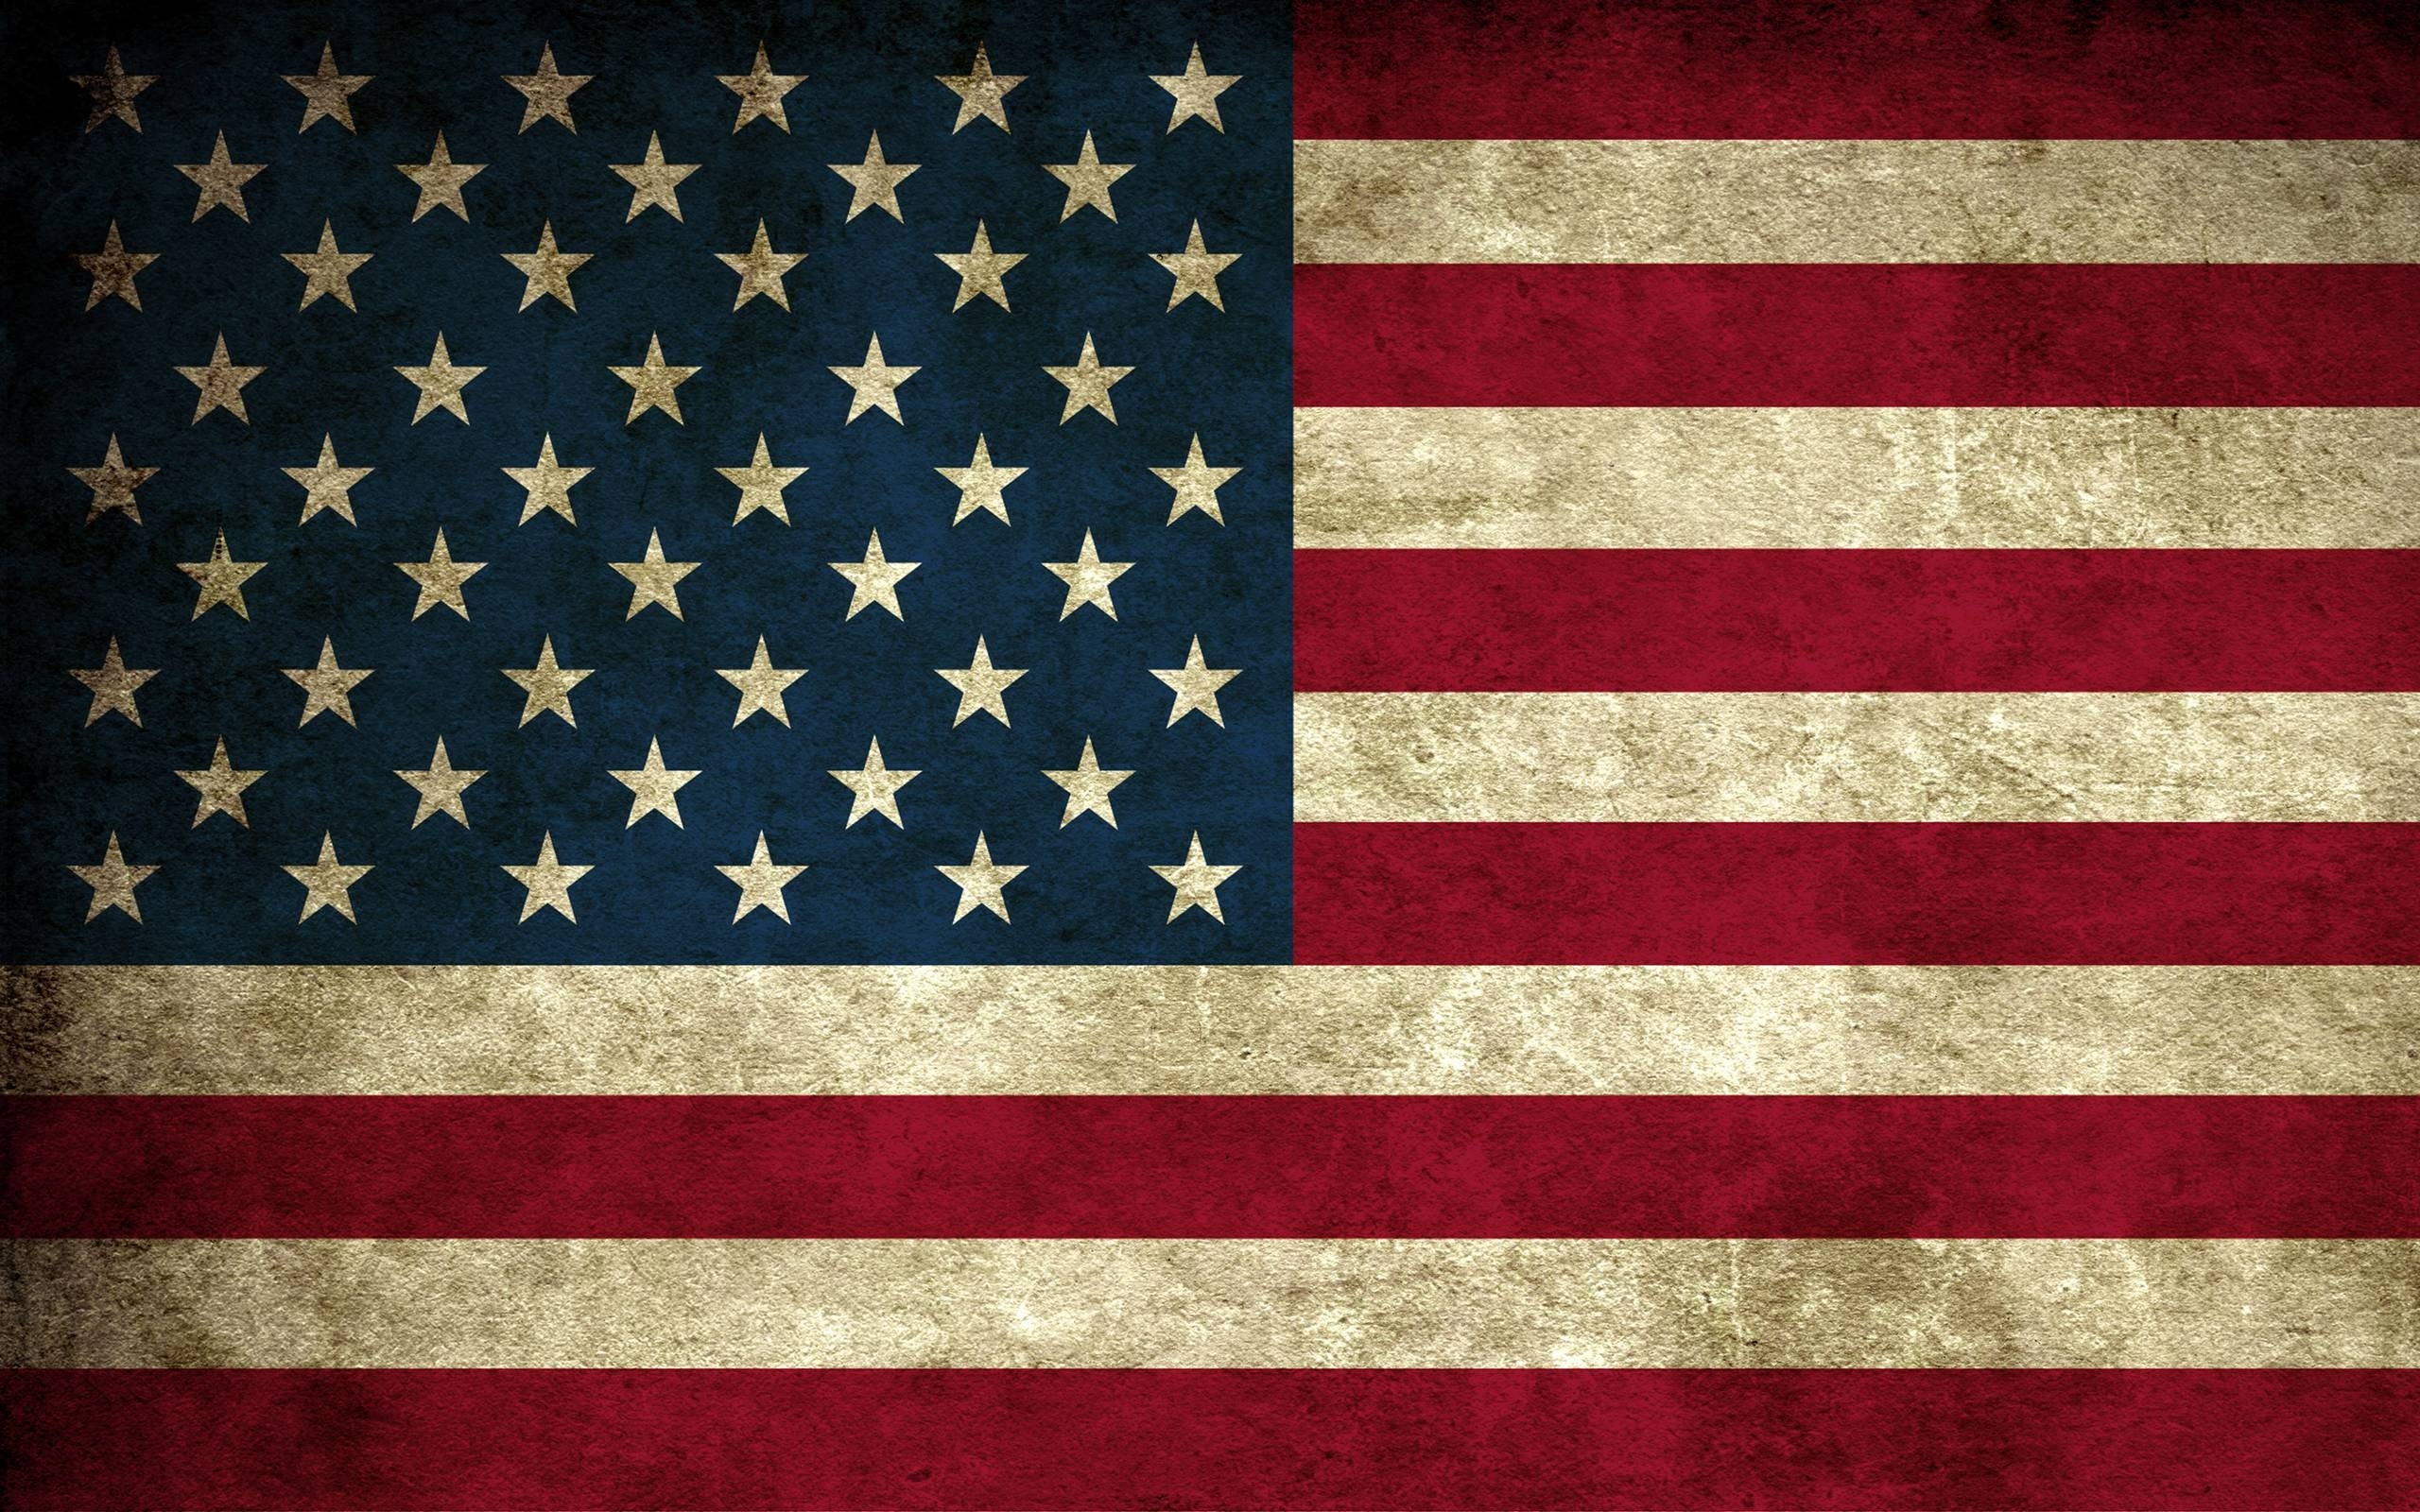 10 New Hd American Flag Wallpapers FULL HD 1080p For PC Background